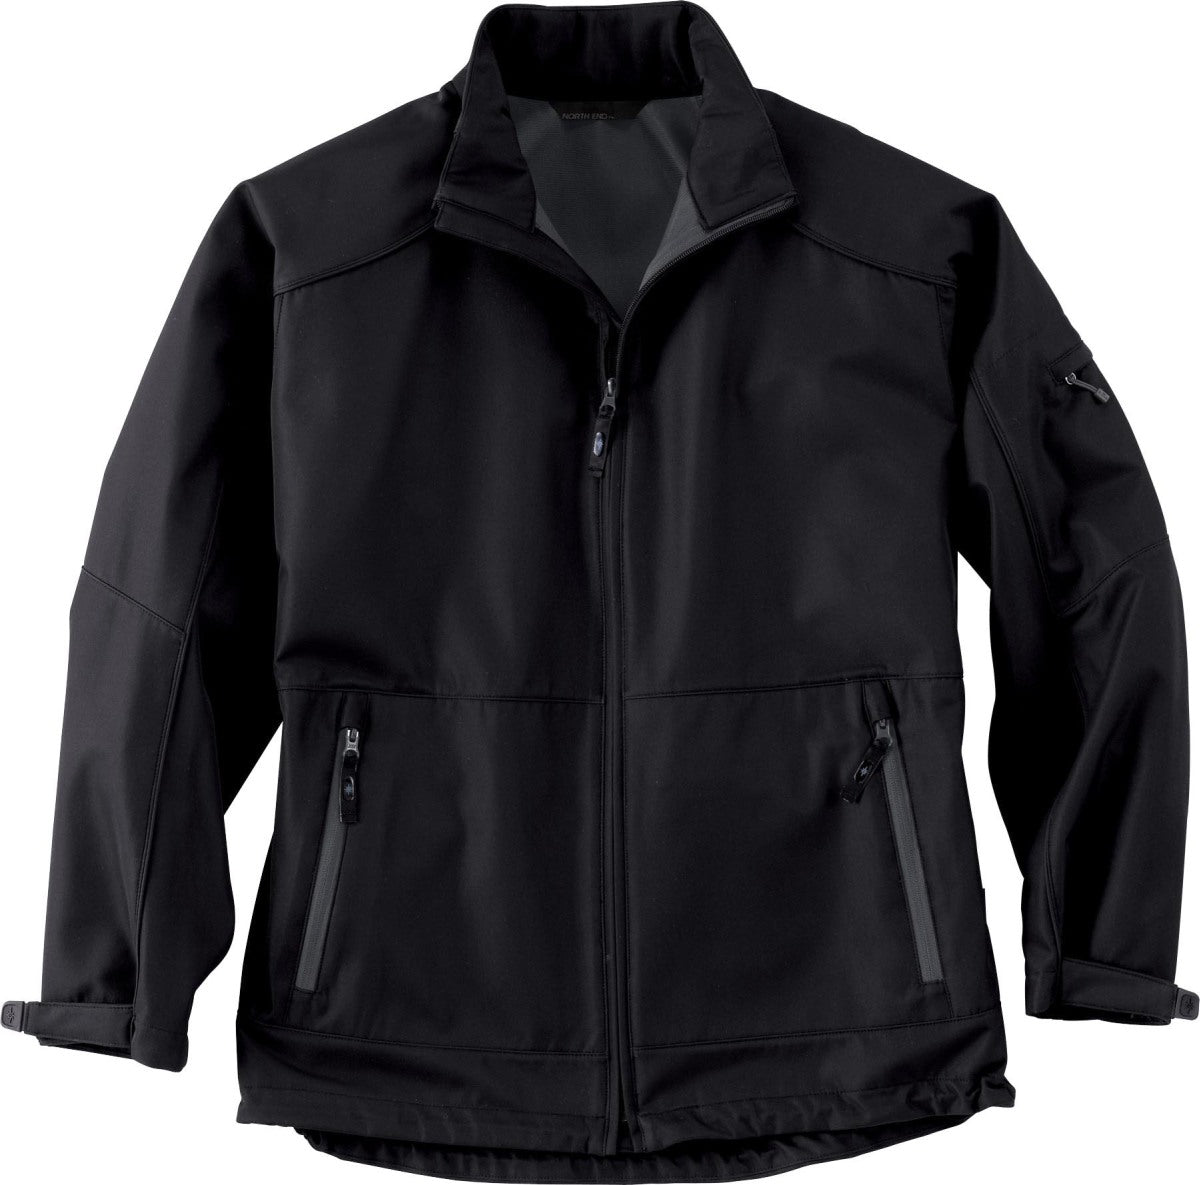 NORTH END MEN'S PERFORMANCE MID-LENGTH SOFT SHELL JACKET